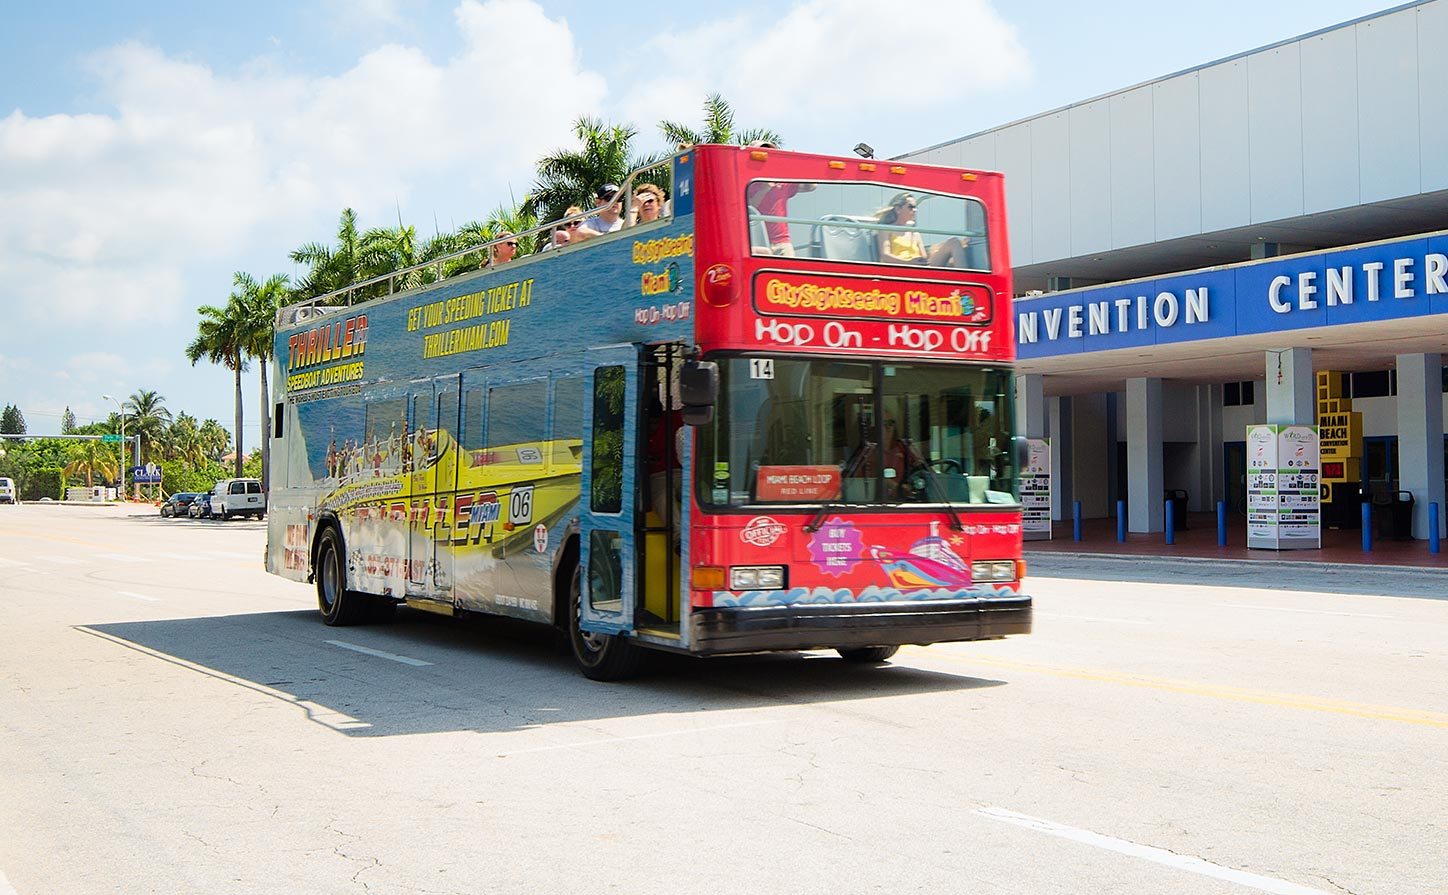 miami-sightseeing-hop-on-hop-of-double-decker-bus - enjoy